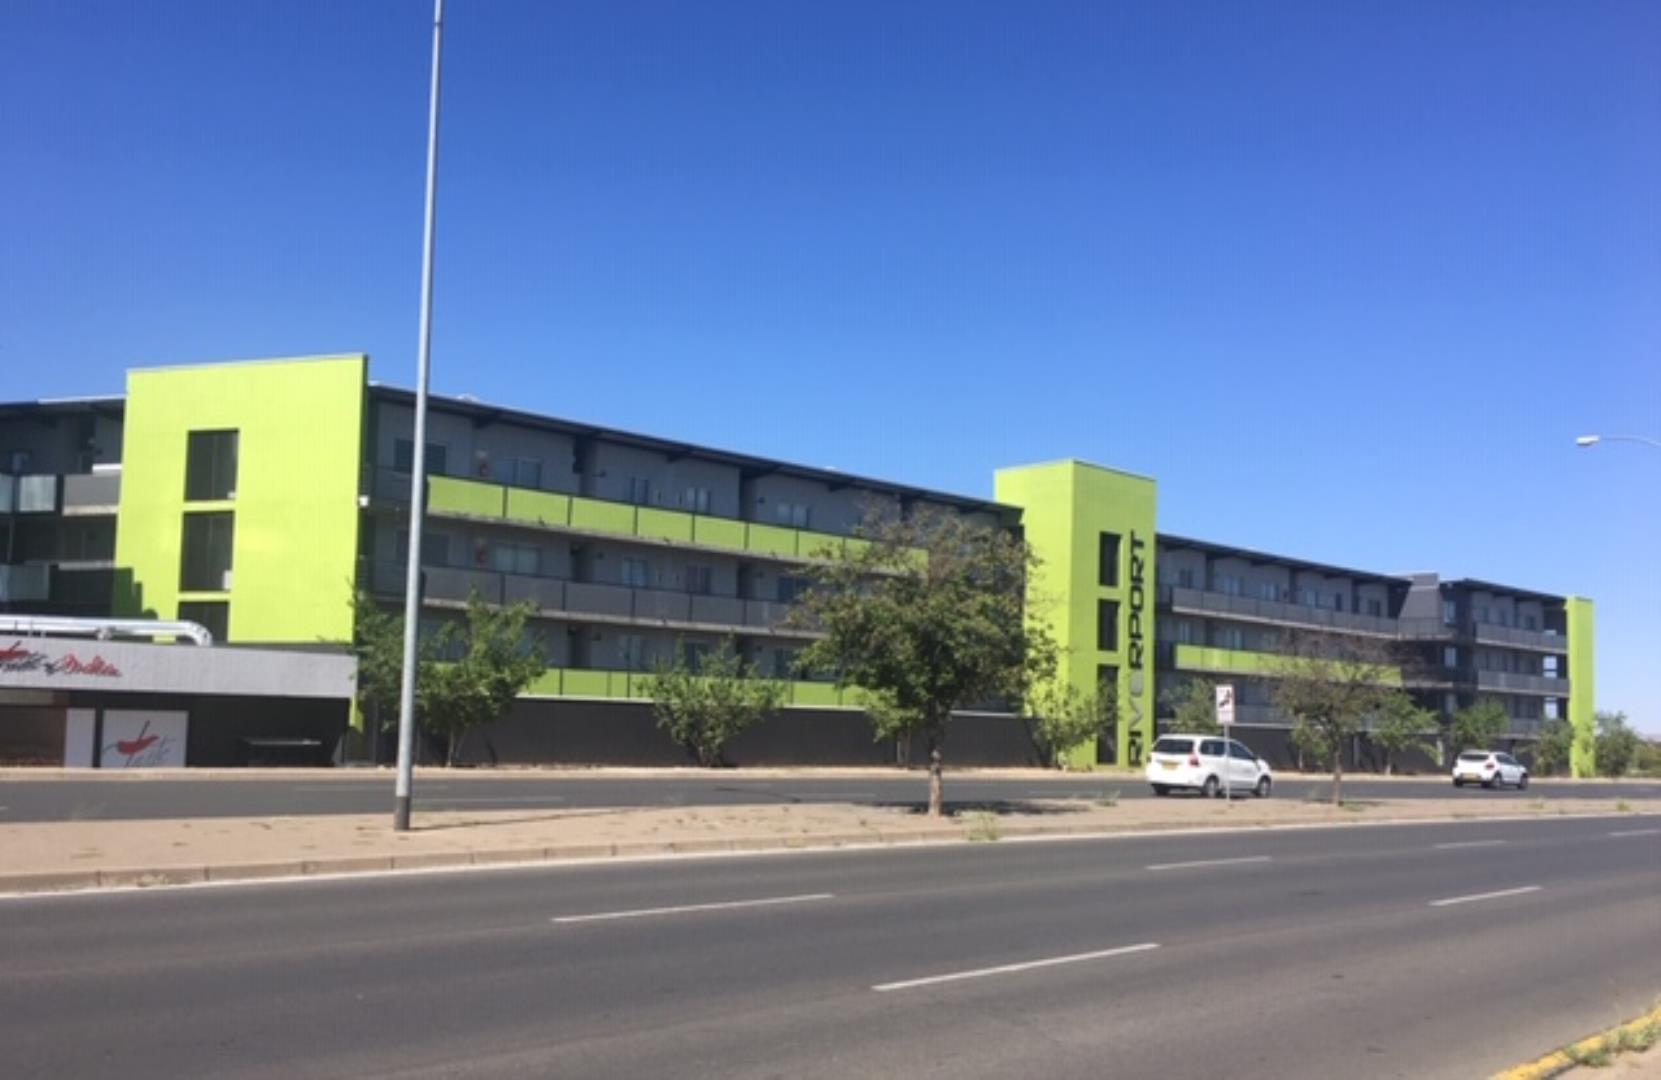 2 Bedroom Apartment for Sale in Windhoek Central, Windhoek - Khomas